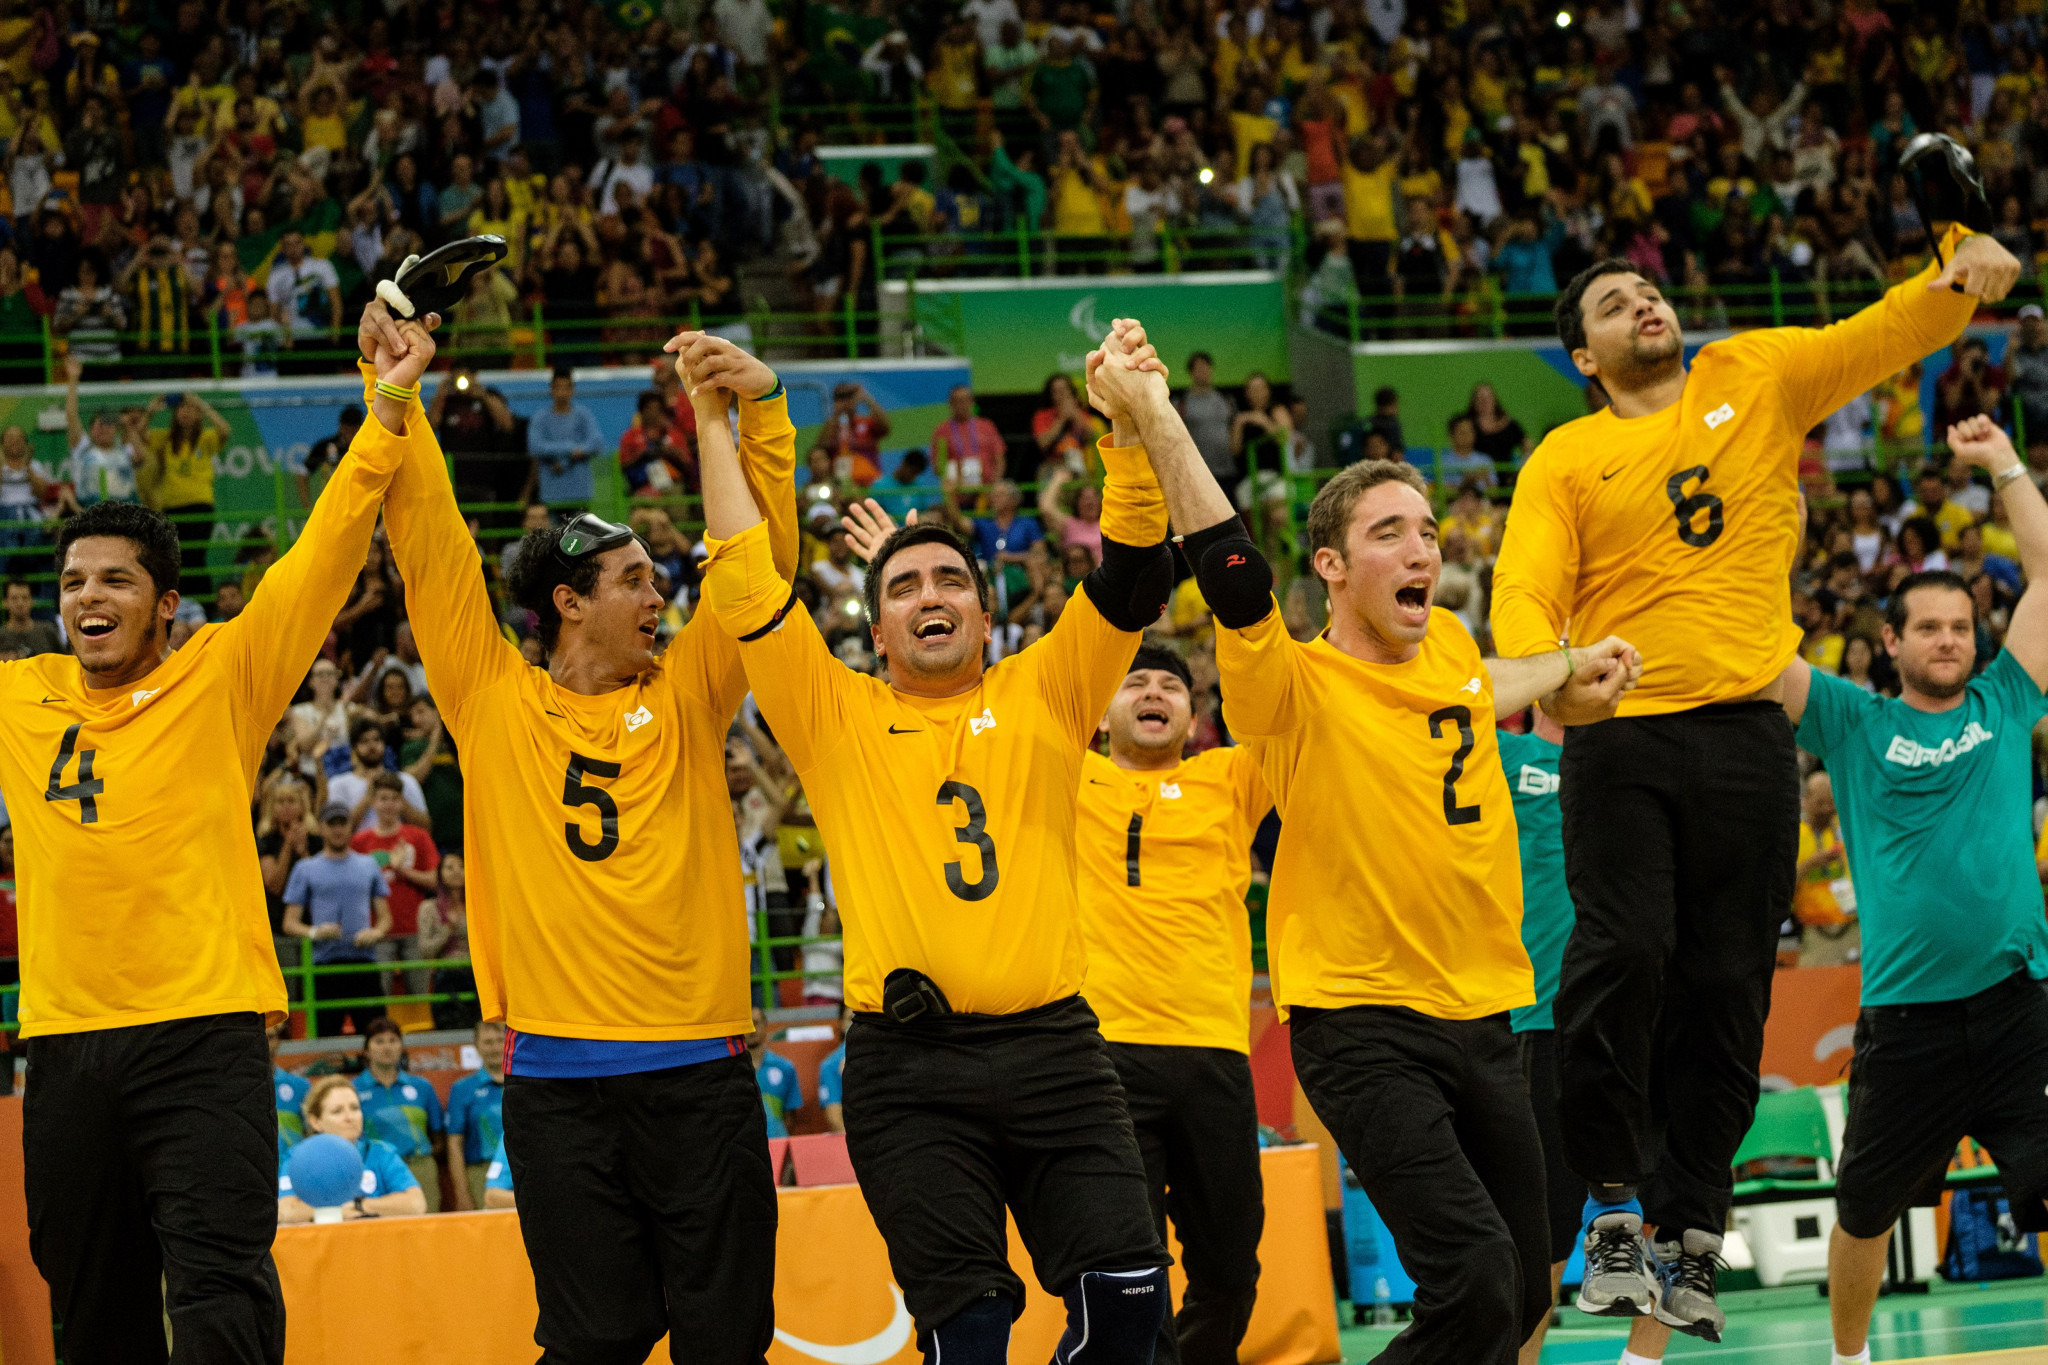 Brazil vying to retain men's title at 2018 IBSA Goalball World Championships